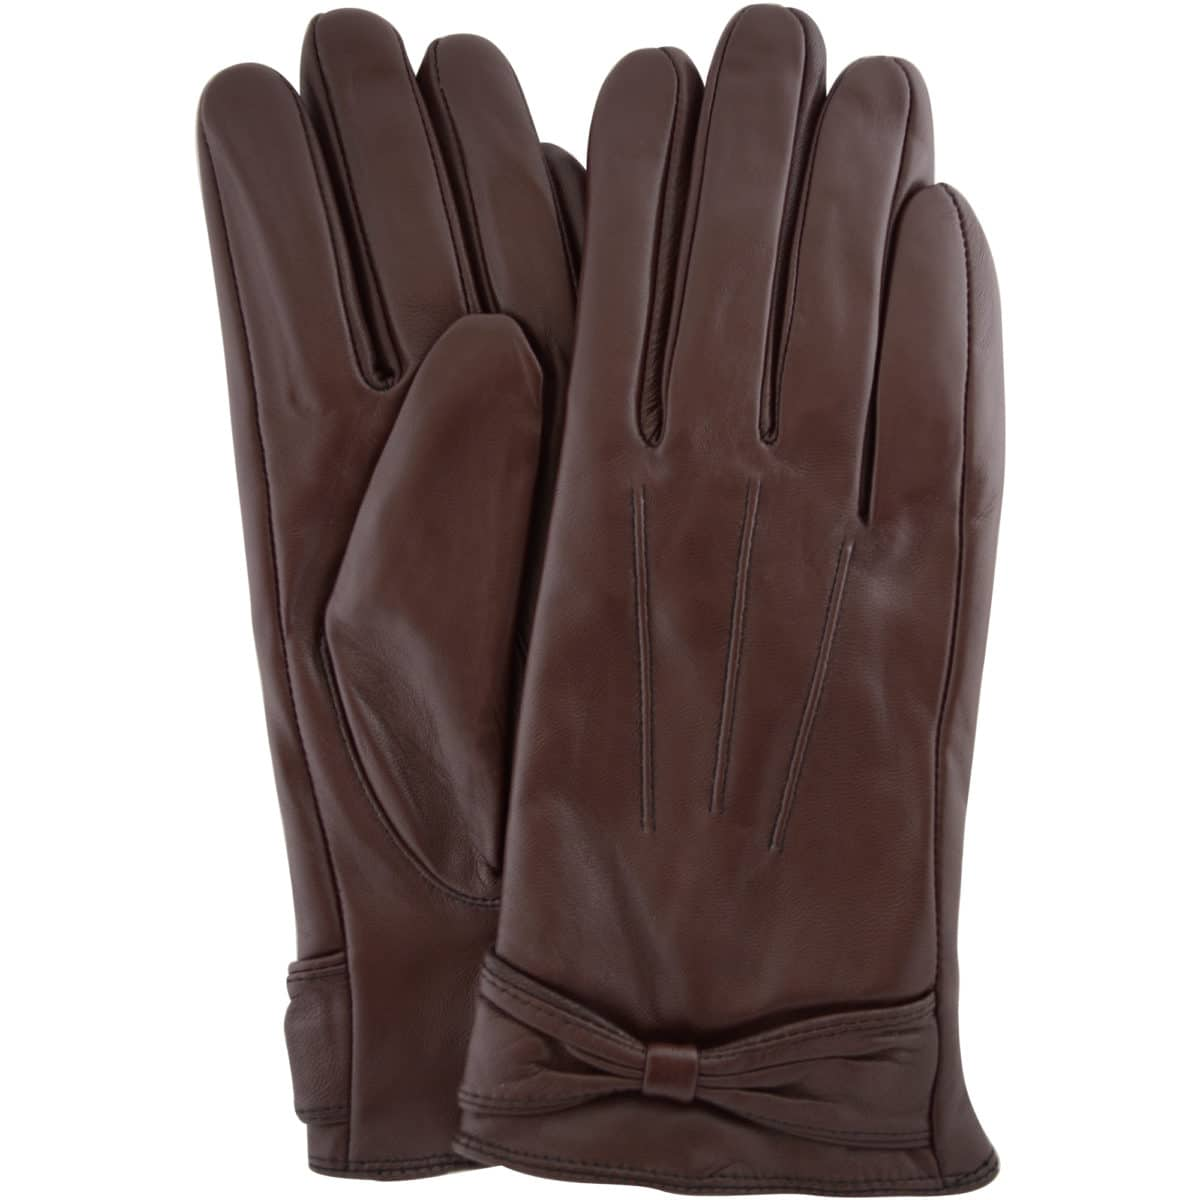 Alwen - Leather Gloves with Bow Design - Brown